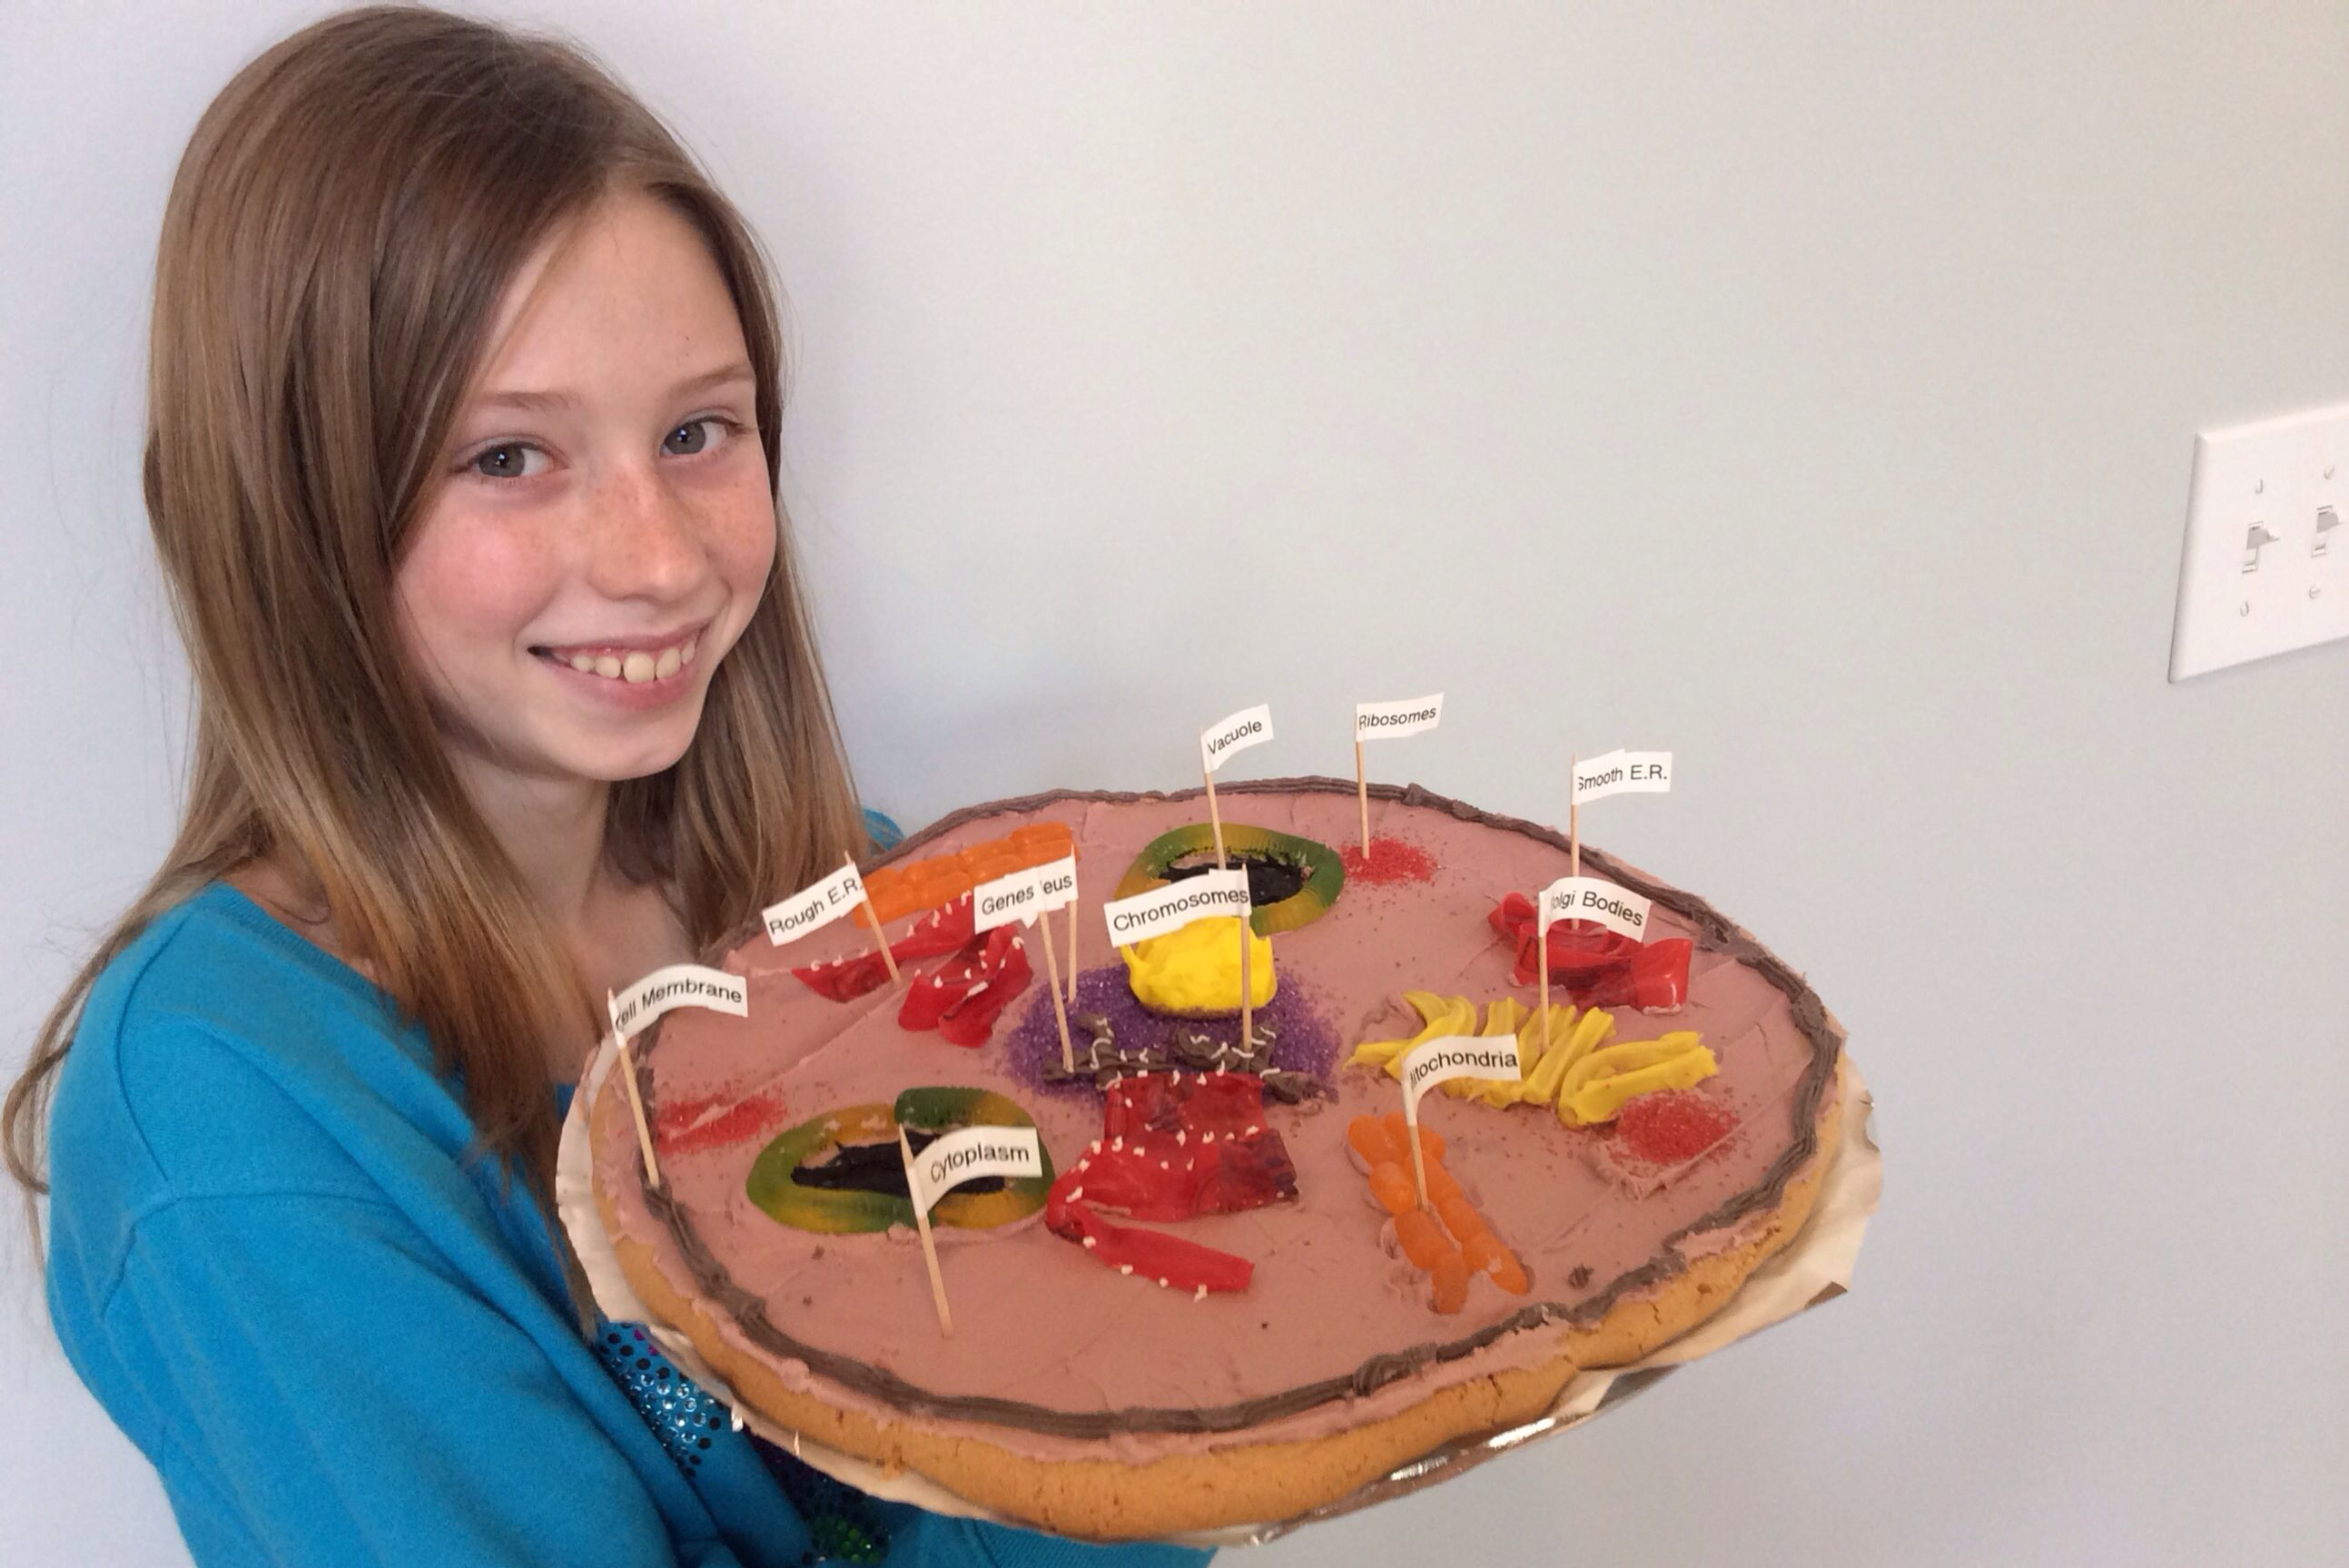 Animal Cell Model Edible